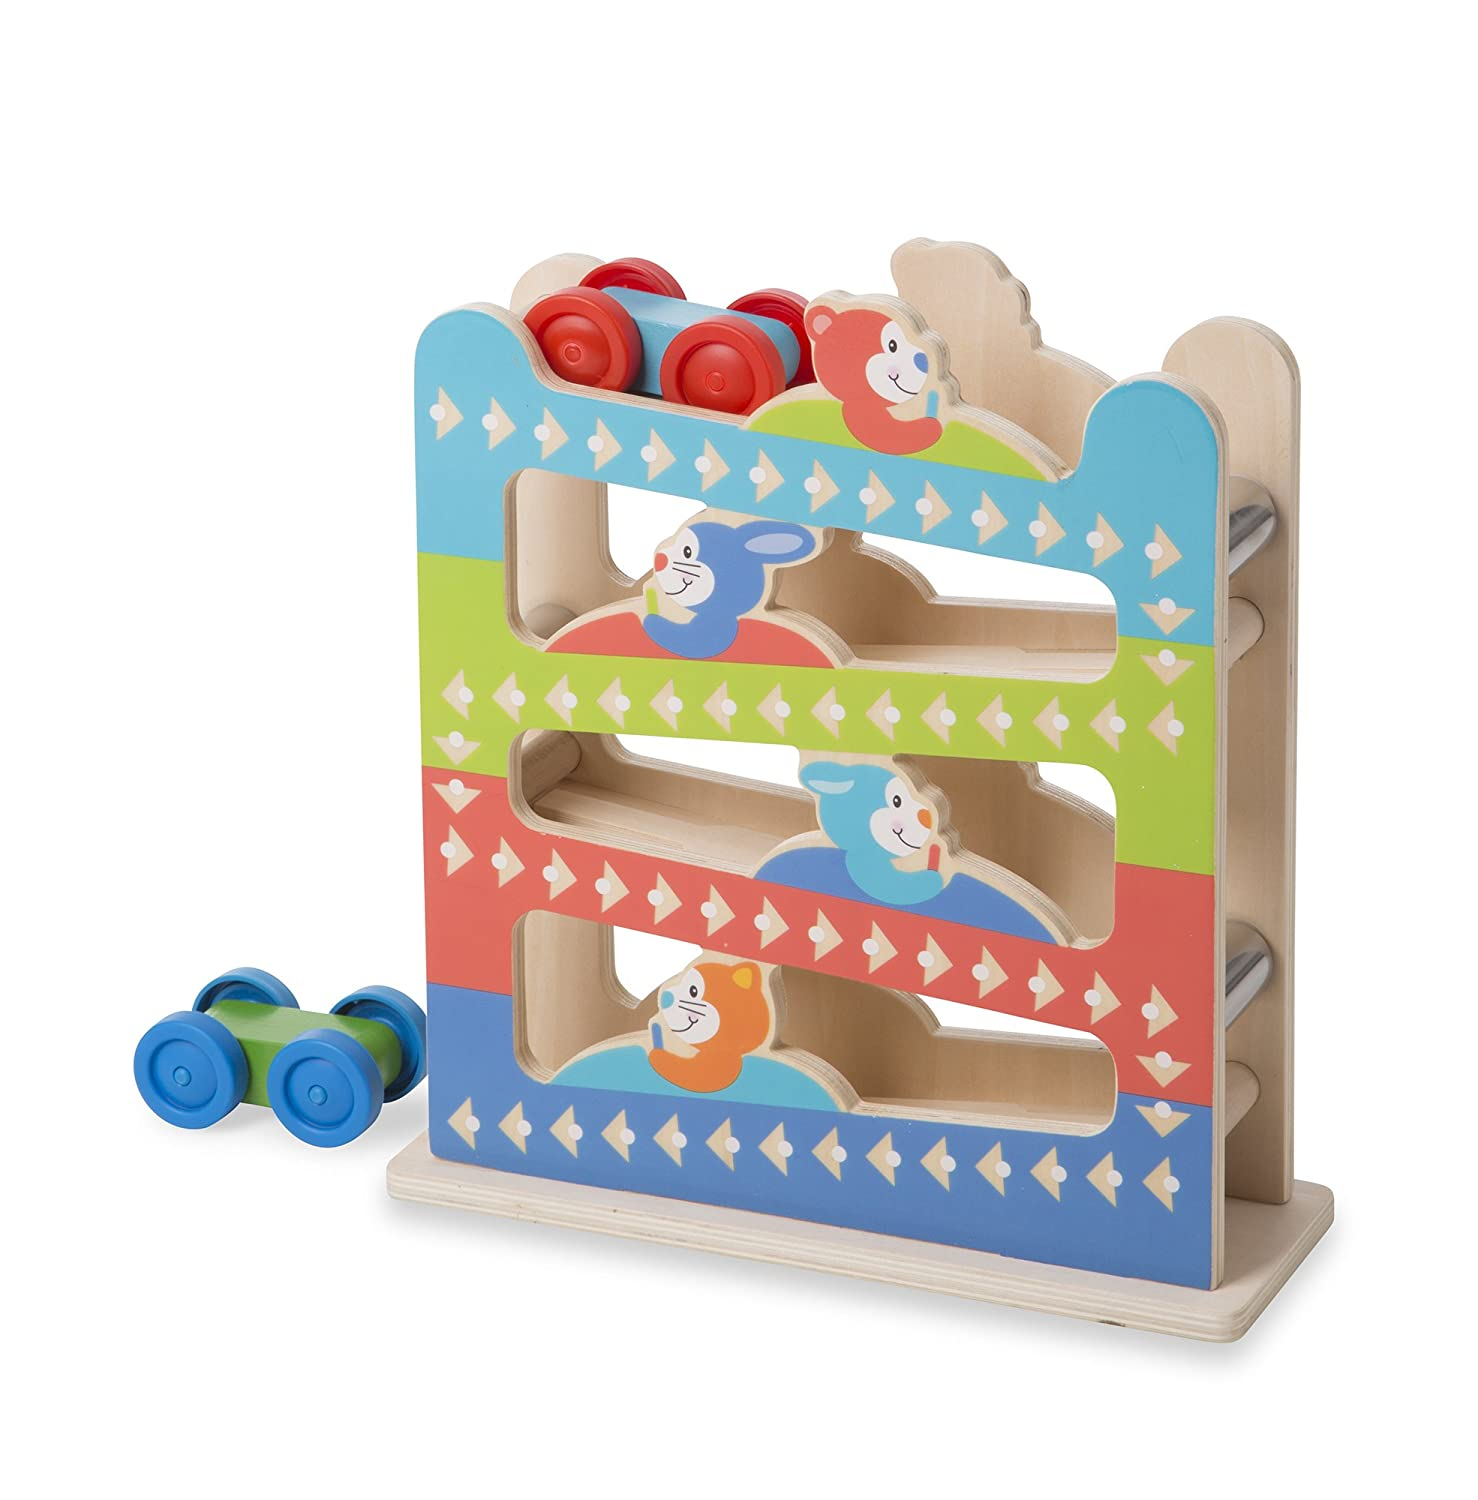 Melissa & Doug 30130 First Play Roll & Ring Ramp Tower Toy with 2 Wooden Cars Melissa and Doug CA